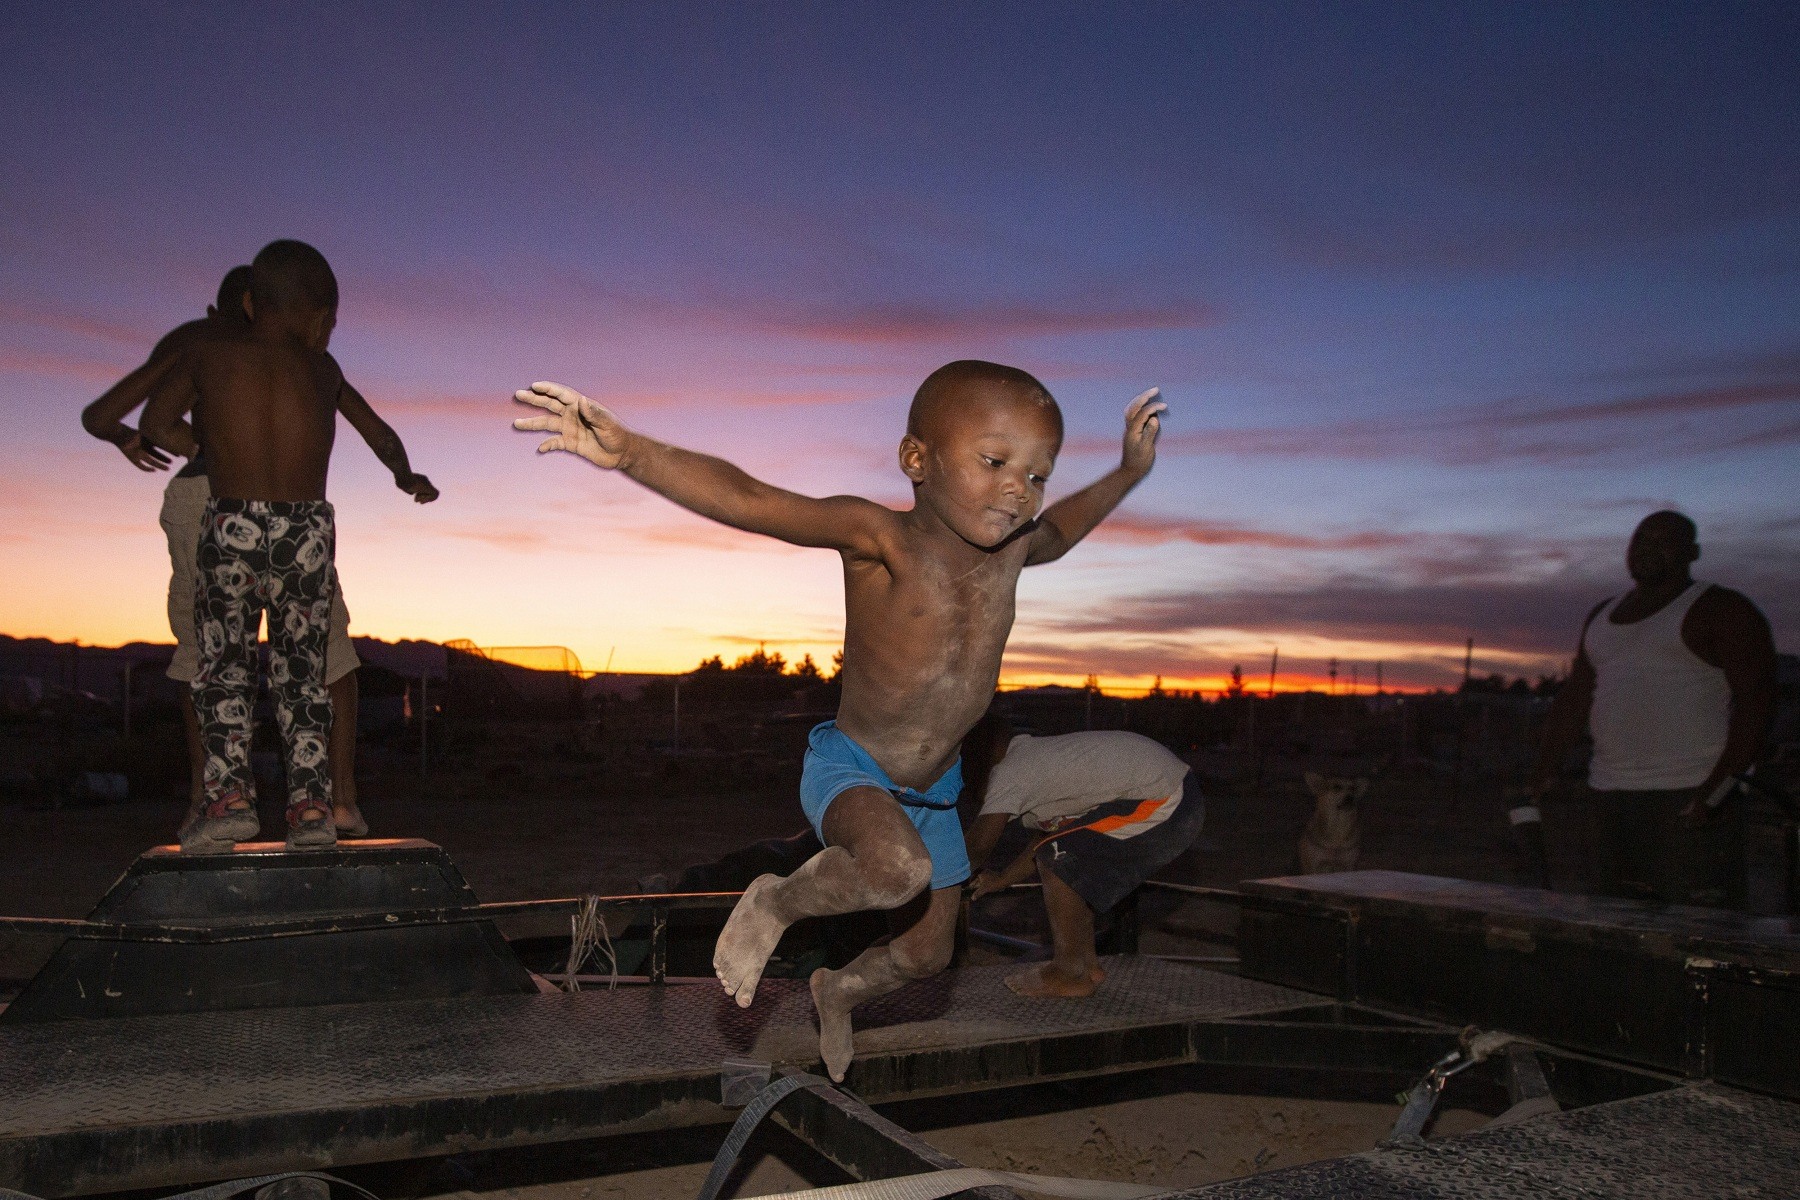 Da'Sean 'Tater Tot' Johnson, 2, jumps across a trailer while his father, right, warns him to watch himself and his brothers, left, watch the sun go down in the rural Nevada mountains on Wednesday, Aug. 21, 2019, in Pahrump.